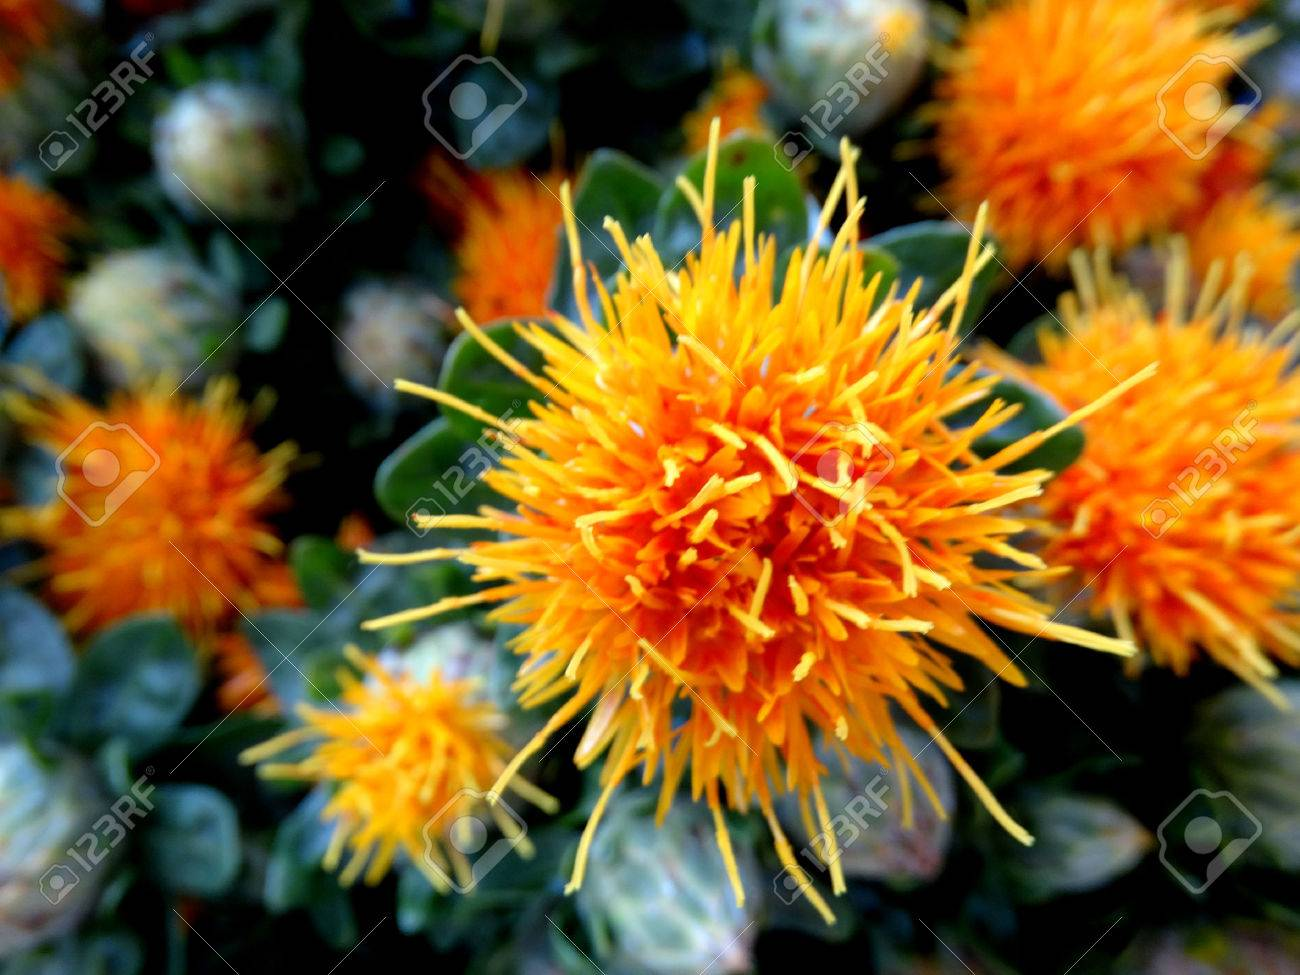 Safflower Carthamus Tinctorius Cultivated Herbaceous Plant Stock Photo Picture And Royalty Free Image Image 34694484